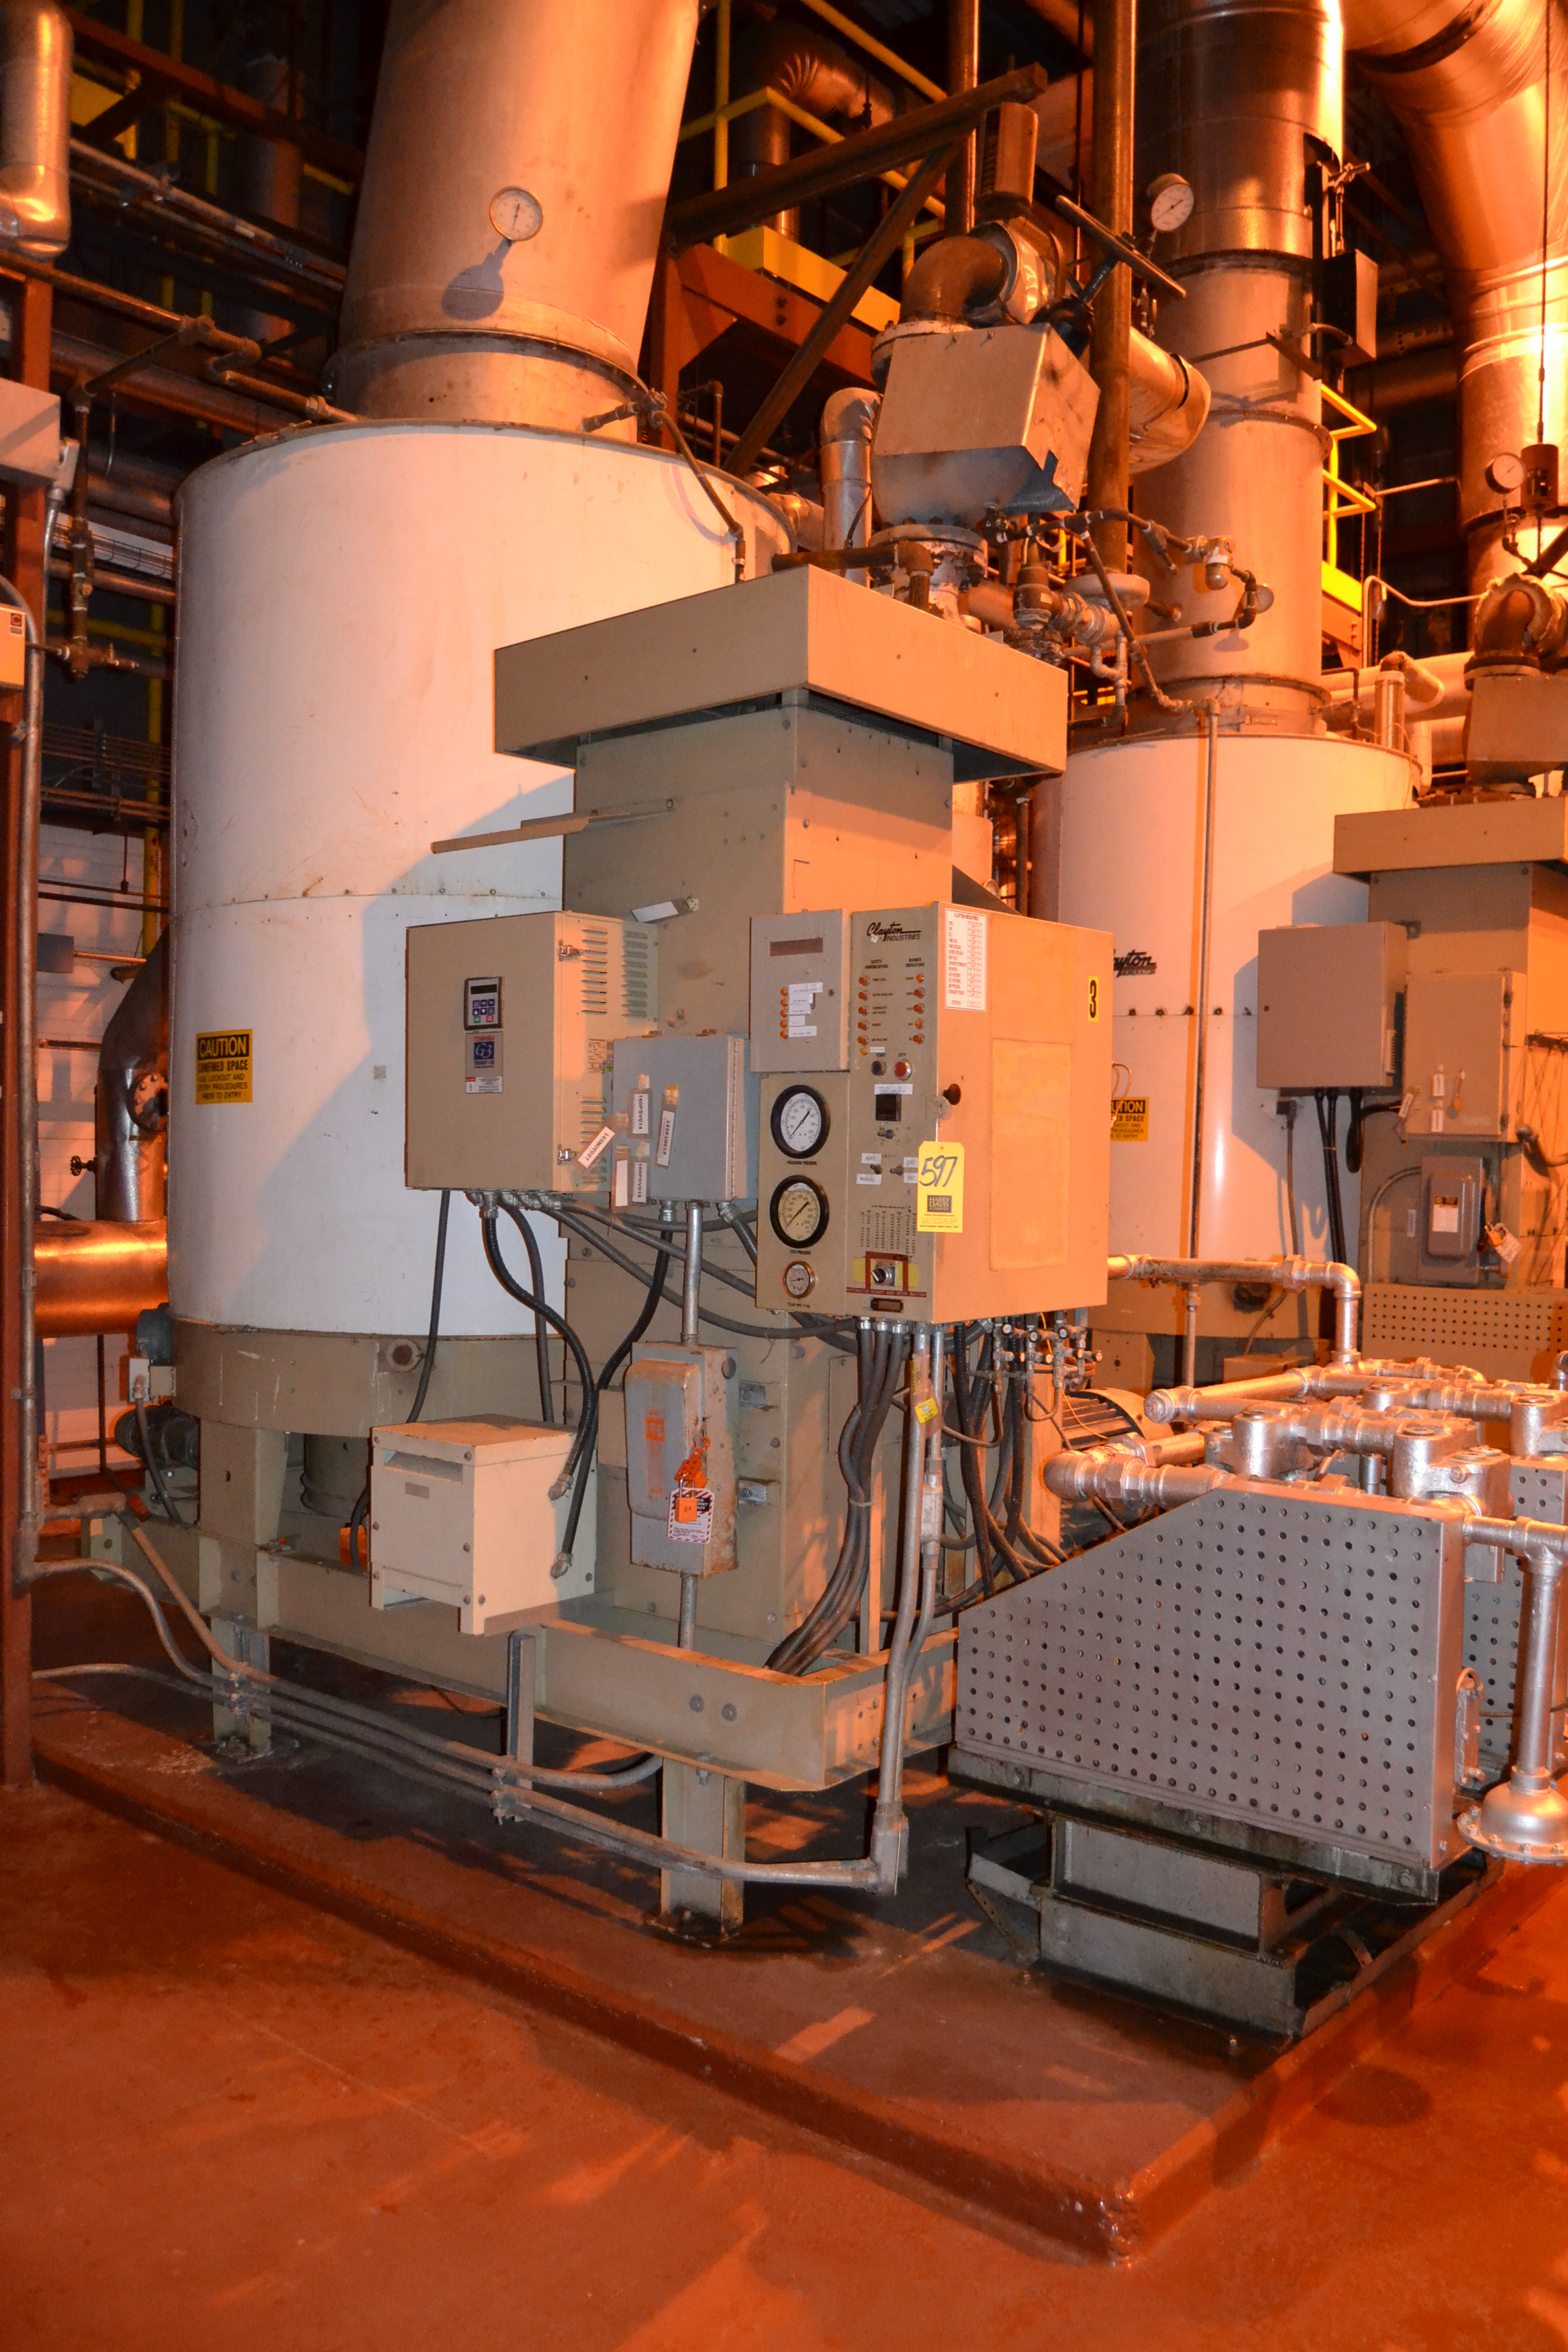 Clayton Steam Generator Model EG 500 2 CSA S N